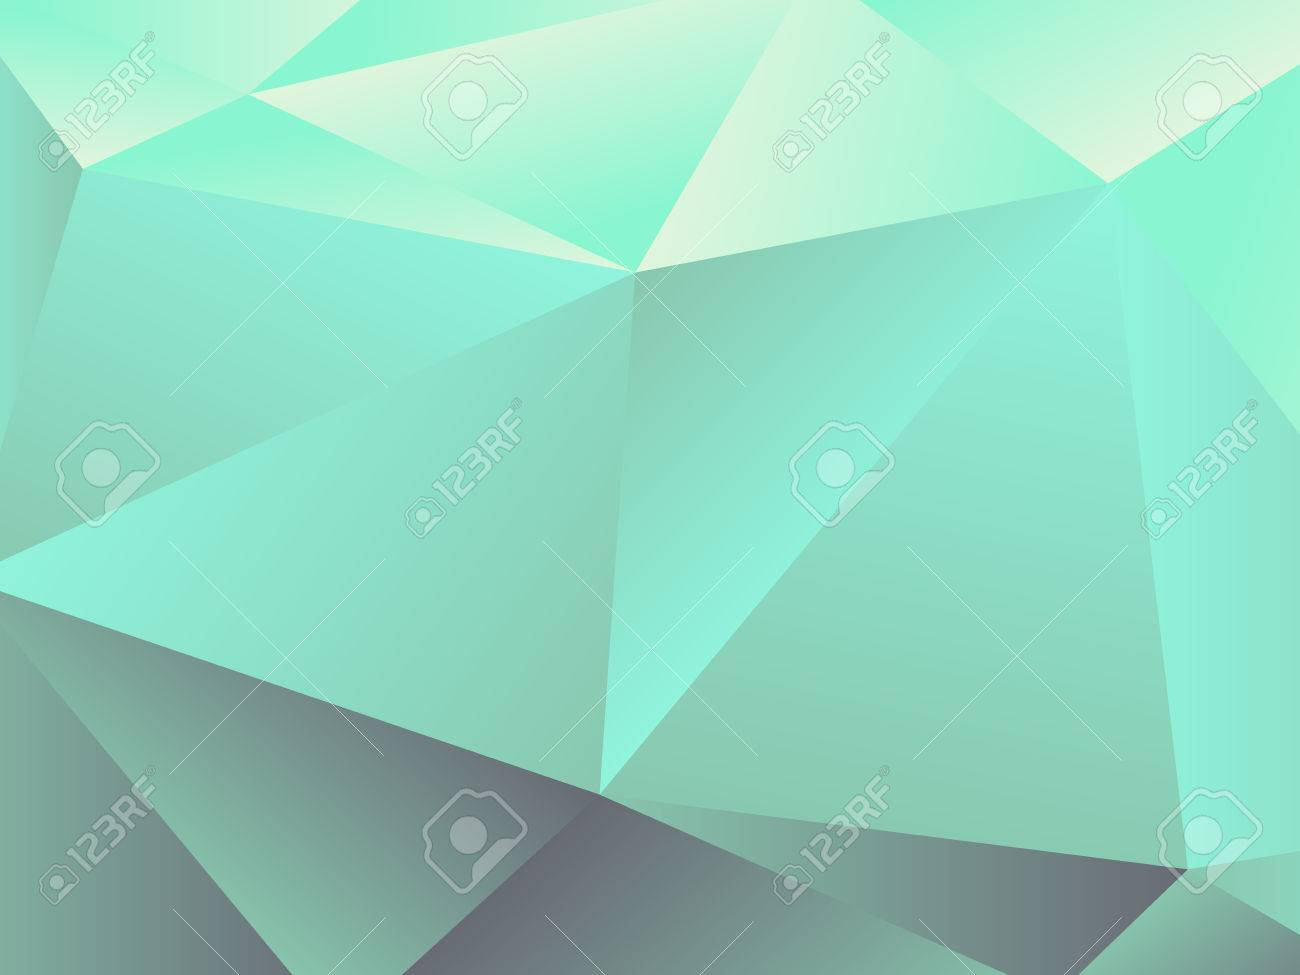 Geometric background, triangle design, mint green color, vector  illustration Stock Vector - 30430032